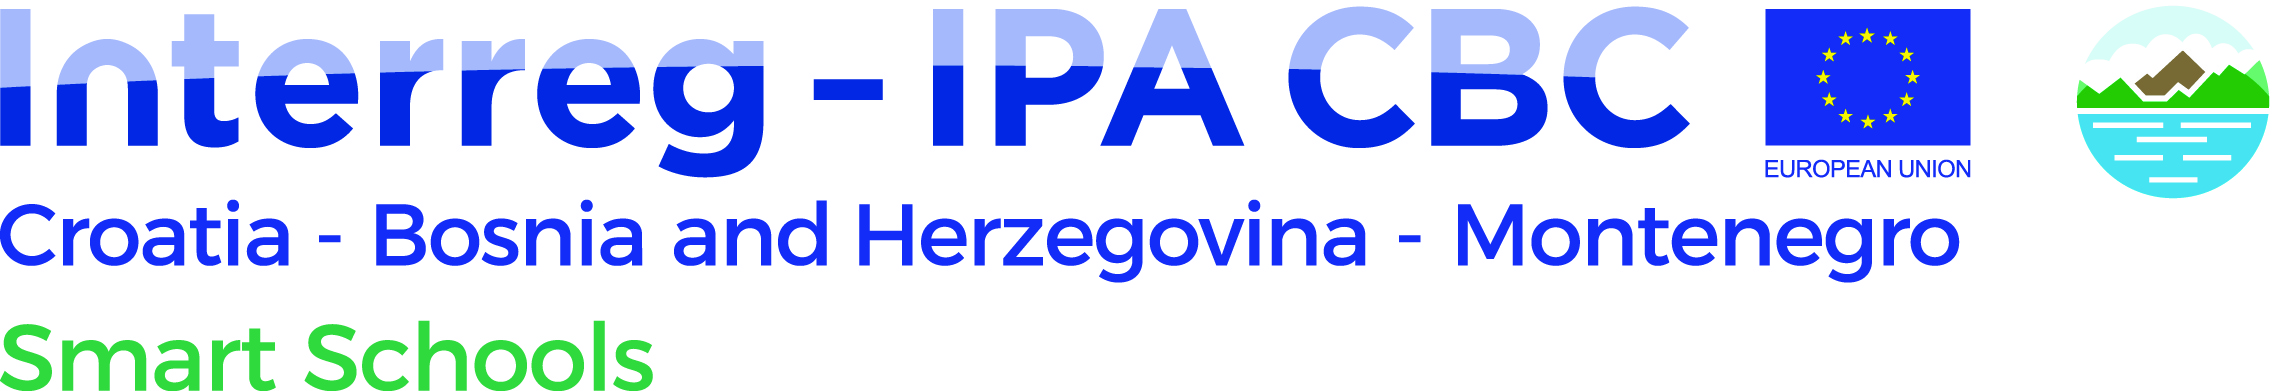 LOGO modifikacija